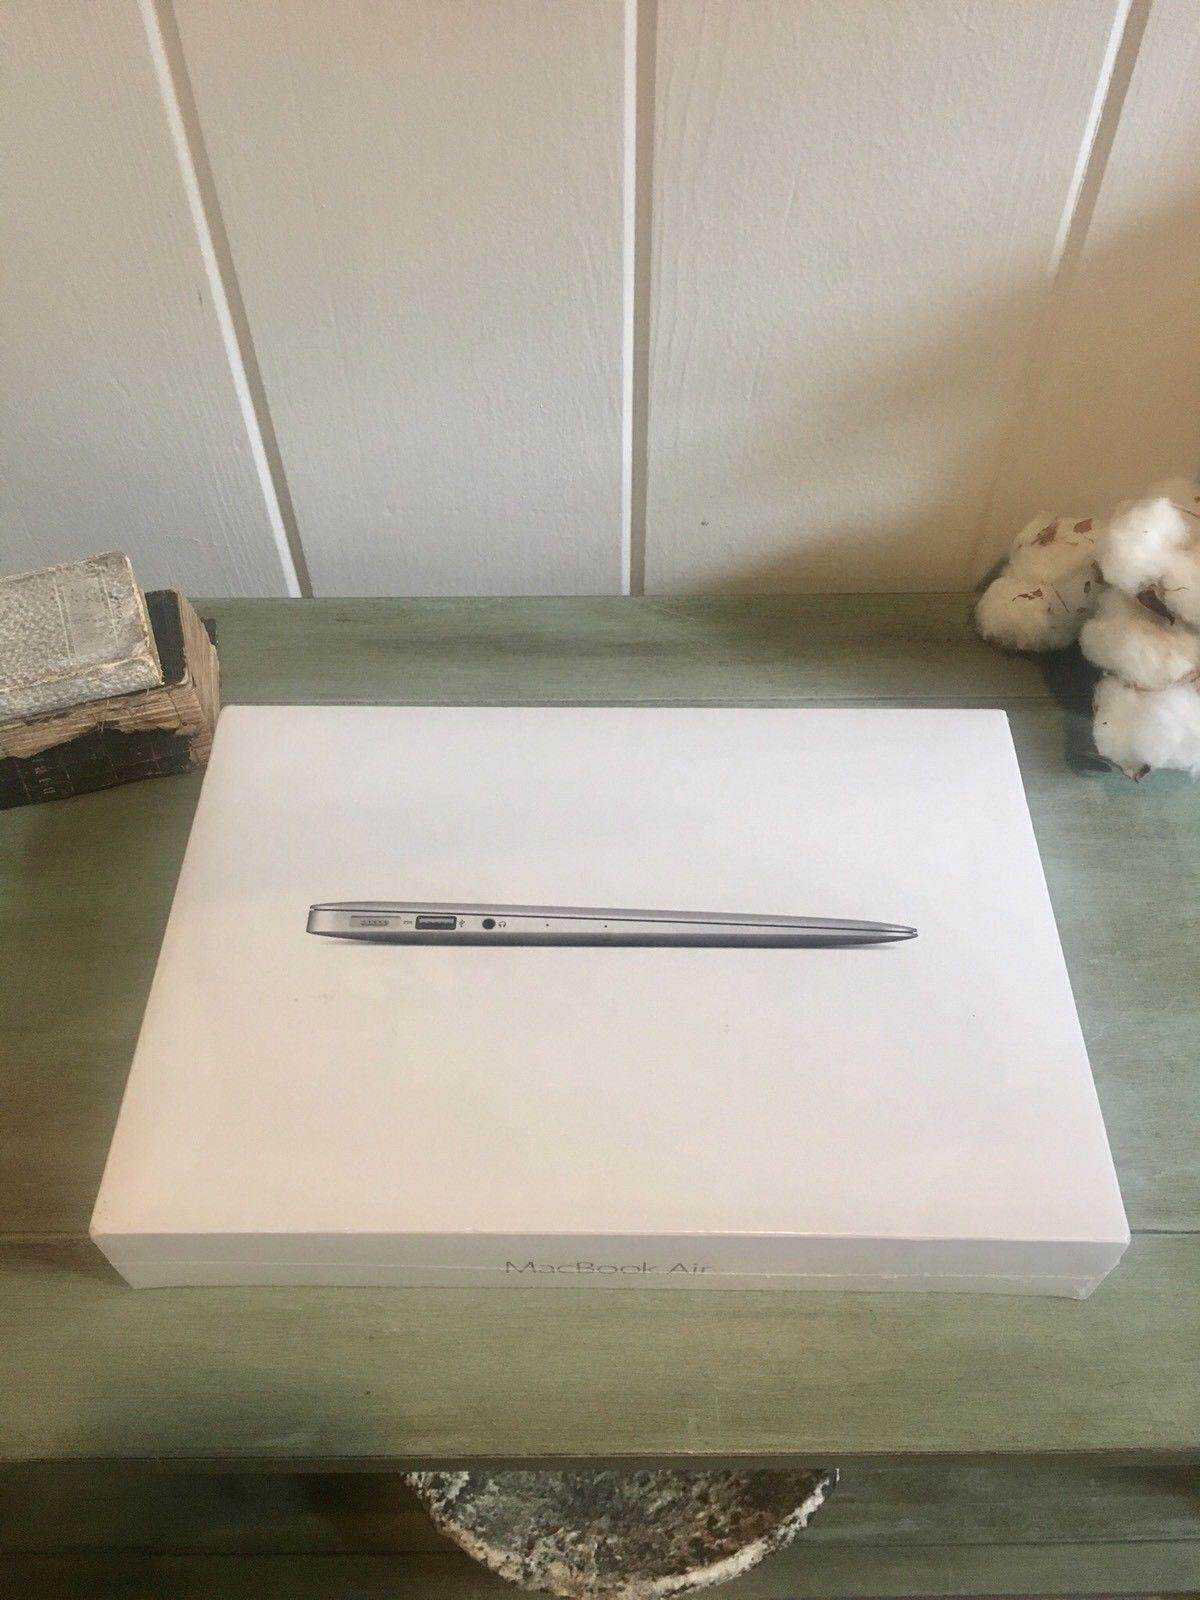 Latest Model 2017 Mac Book Air Upgraded 2.2ghz i7 8GB 256GB